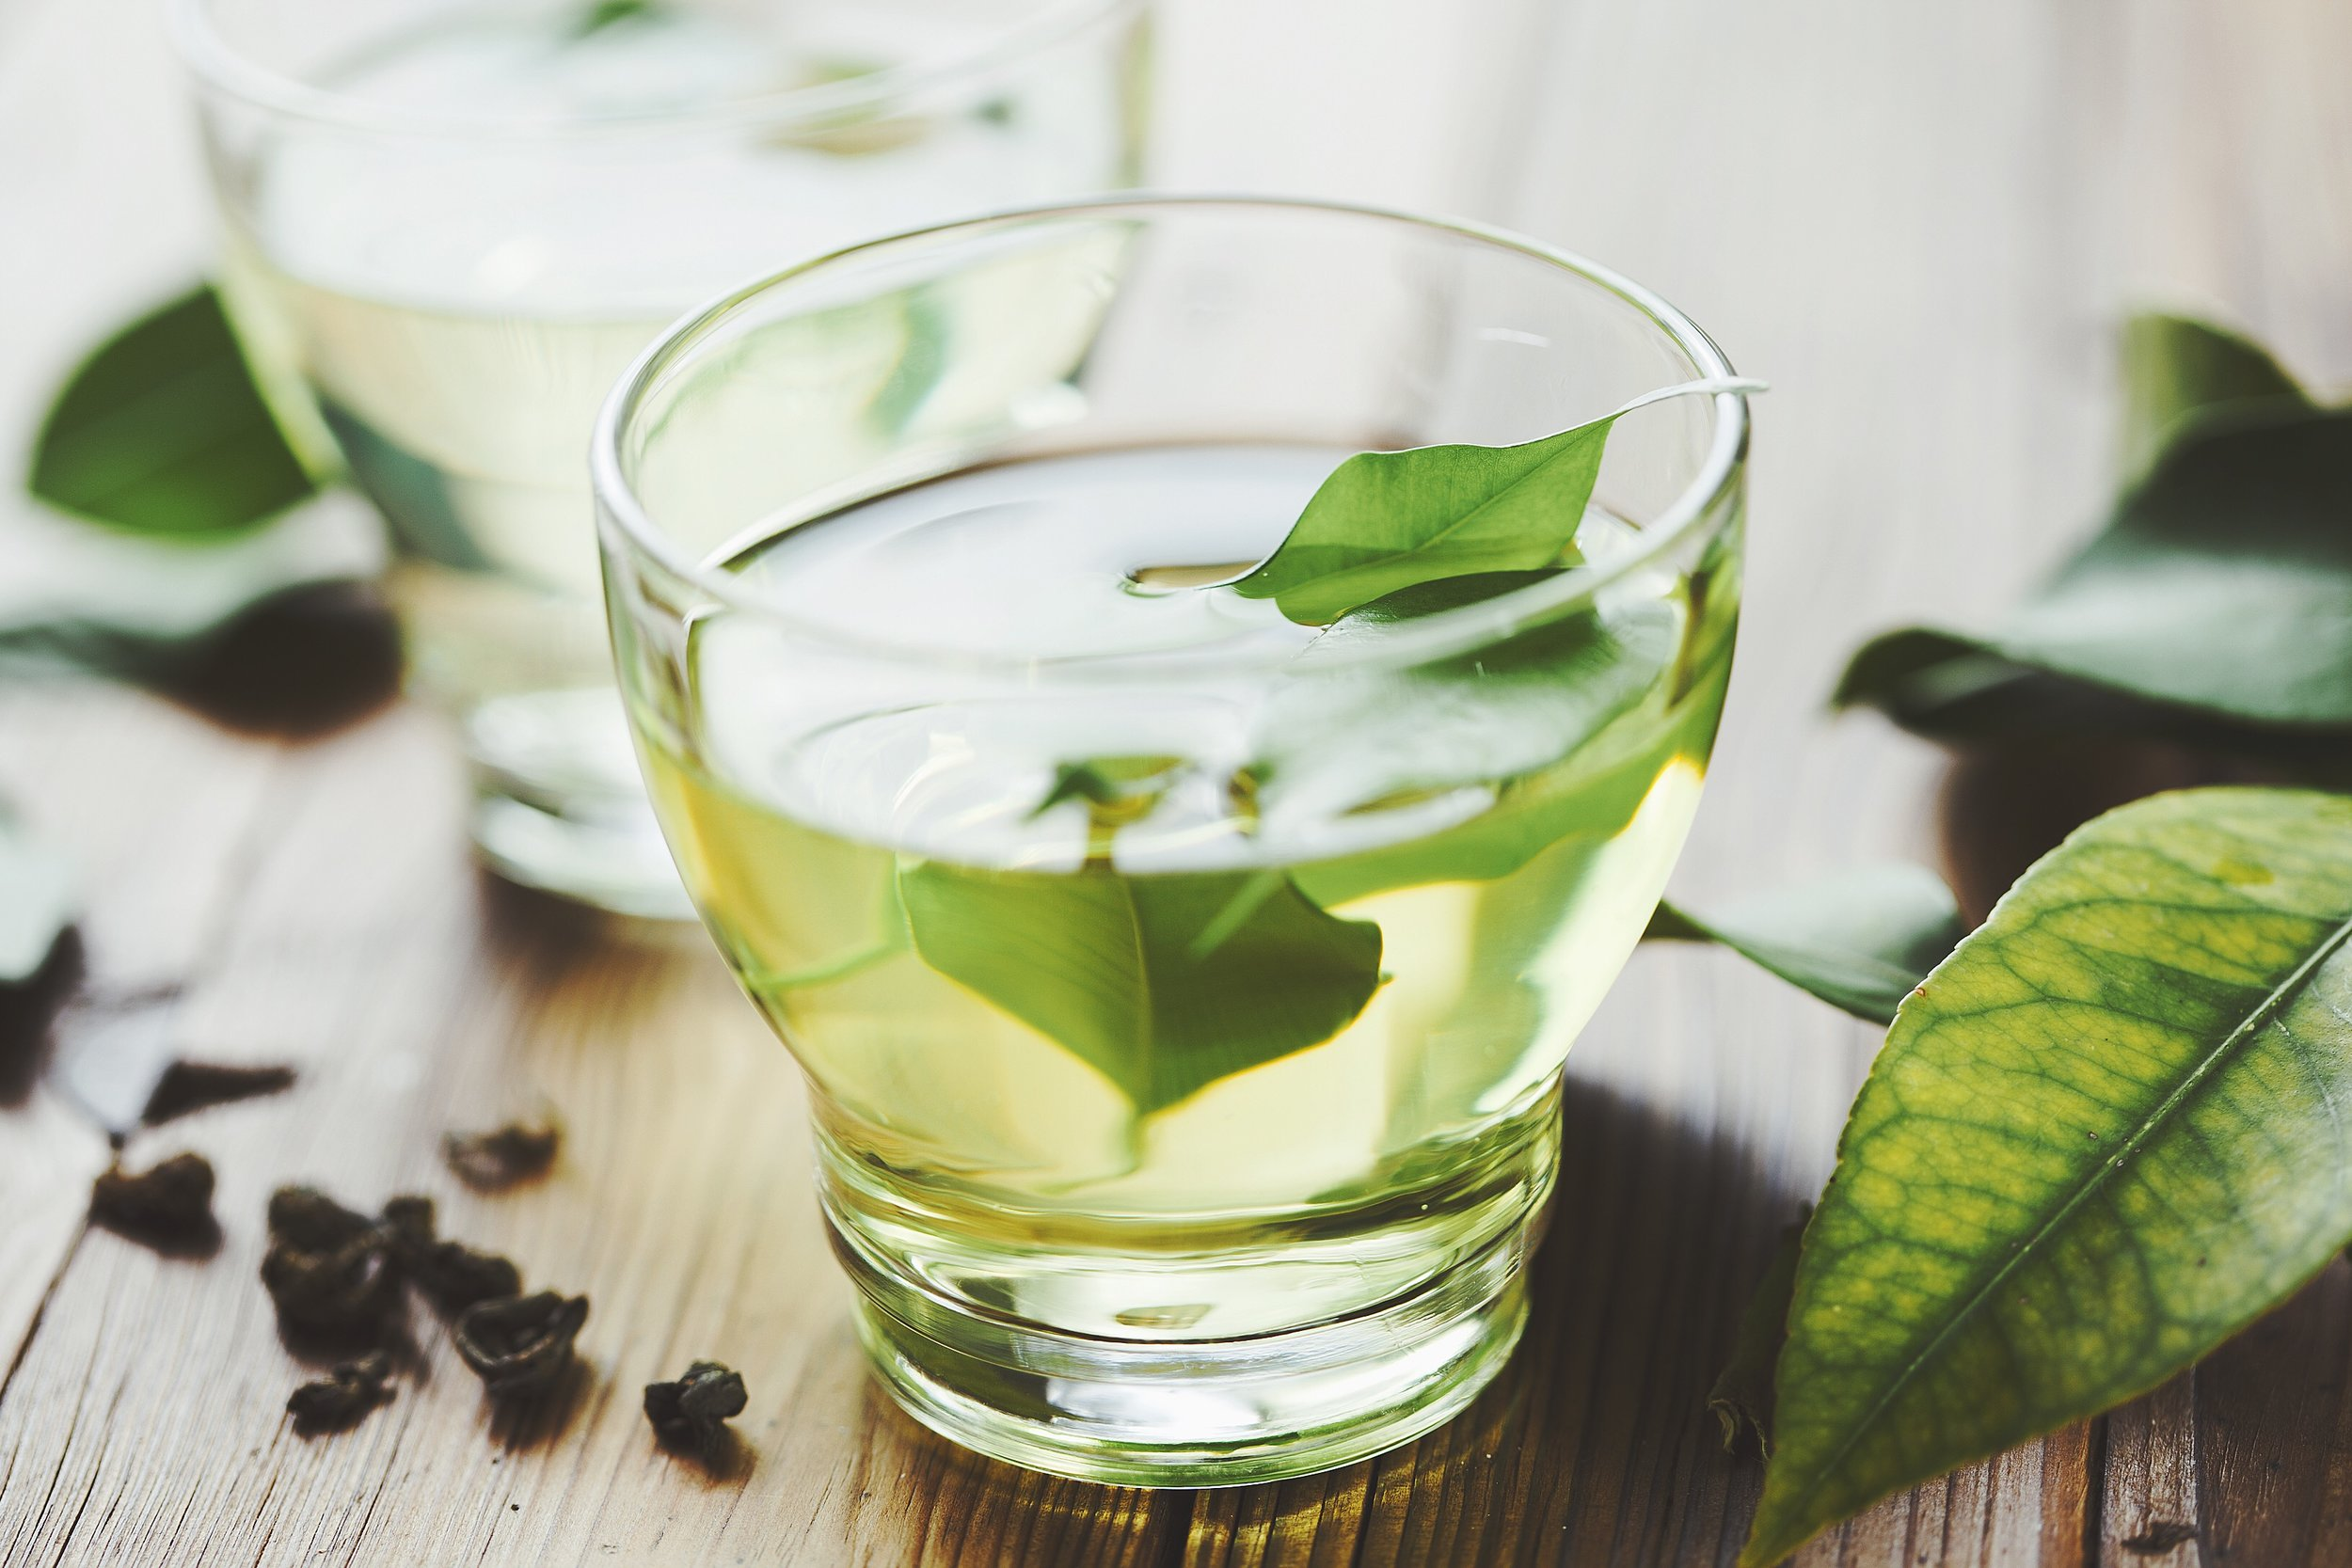 "Green Tea - Many types of green tea, from regular to matcha, yield powerful polyphenols. ""Green tea is rich in flavonoids and indeed epidemiological in vitro, and animal-model studies have associated green tea consumption with health benefits, including decreased risk of inflammation.""22These compounds go beyond inflammation and help battle cancer, too. ""Epidemiological, in vitro, and animal model studies have implicated green tea to be protective against nitroso compound-induced and inflammation-related cancer.""23But green tea's benefits don't stop there. ""Among the health benefits of green tea are: anticarcinogenic, anti-inflammatory, antimicrobial, and antioxidant properties, and benefits in cardiovascular disease and oral health.""24It's no wonder people have been using green tea for so long in traditional medicine."